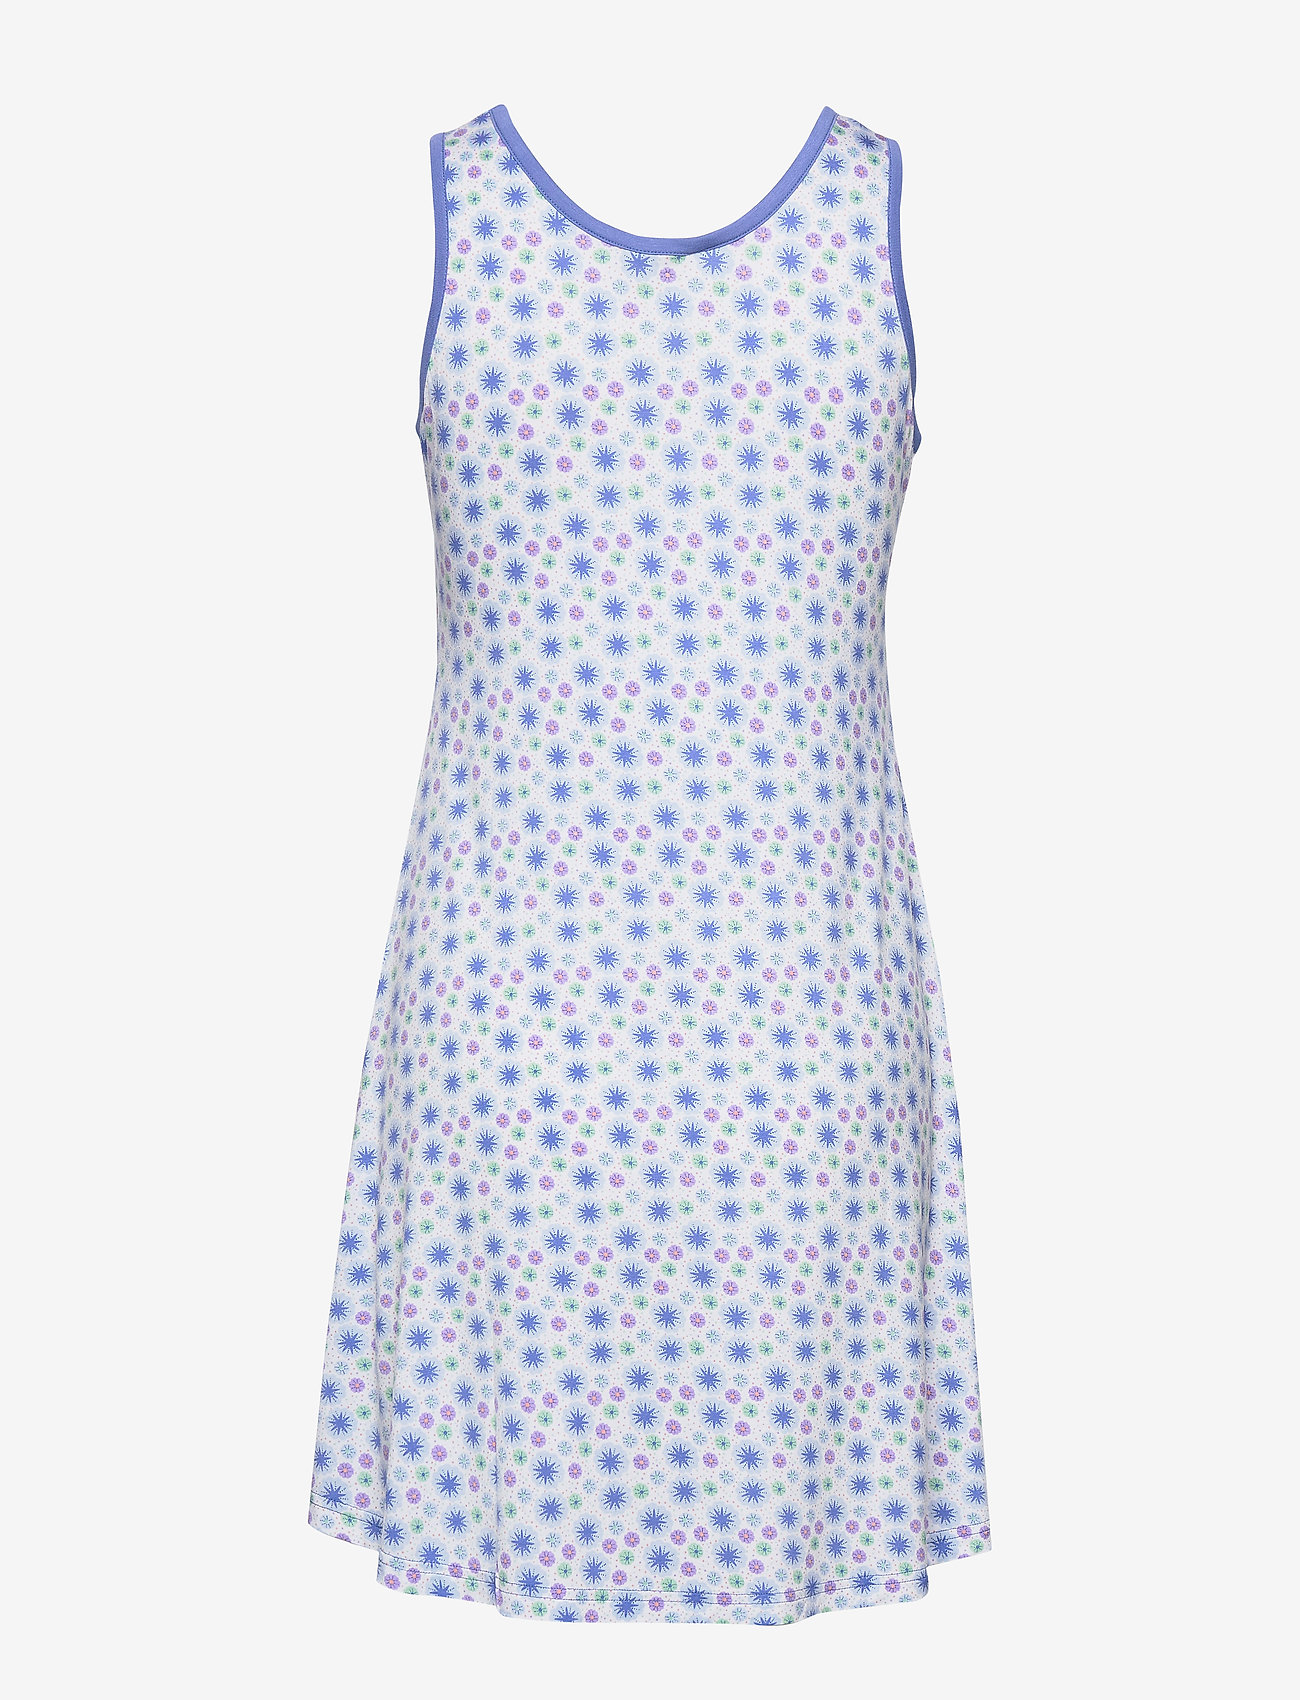 Bamboo Sleeveless Nightdress (Floral Blue) - Lady Avenue LTtngt